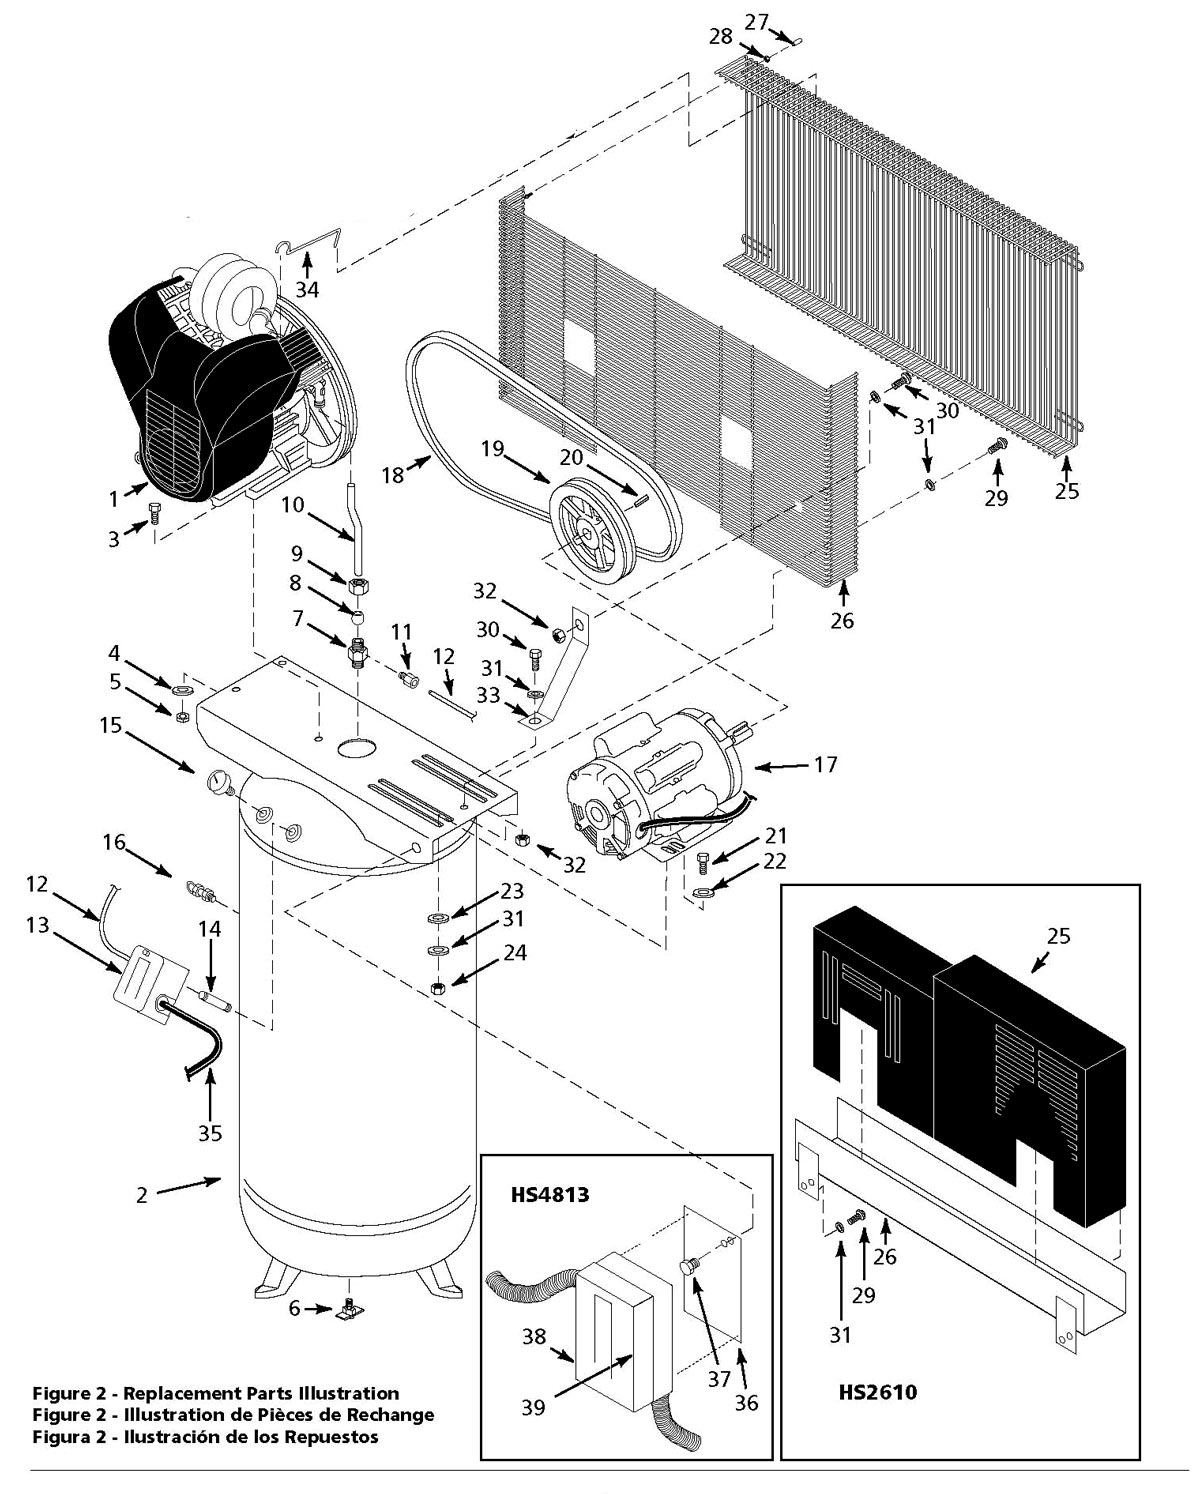 HS4810, HS4813, HS4814 - Air Compressor Parts schematic